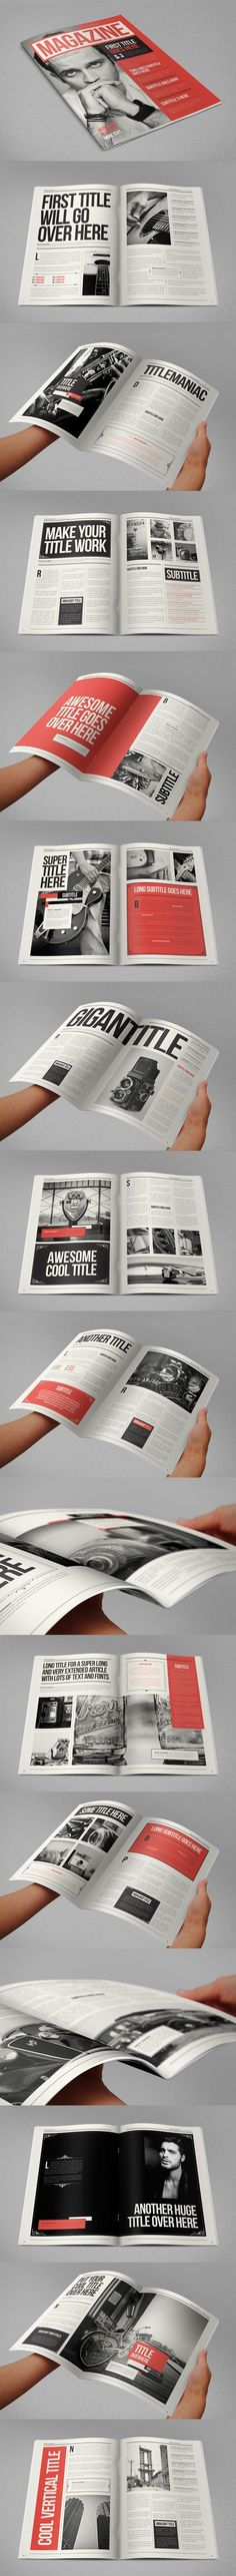 Layout design / Retro Vintage Magazine on Editorial Design Served by frances